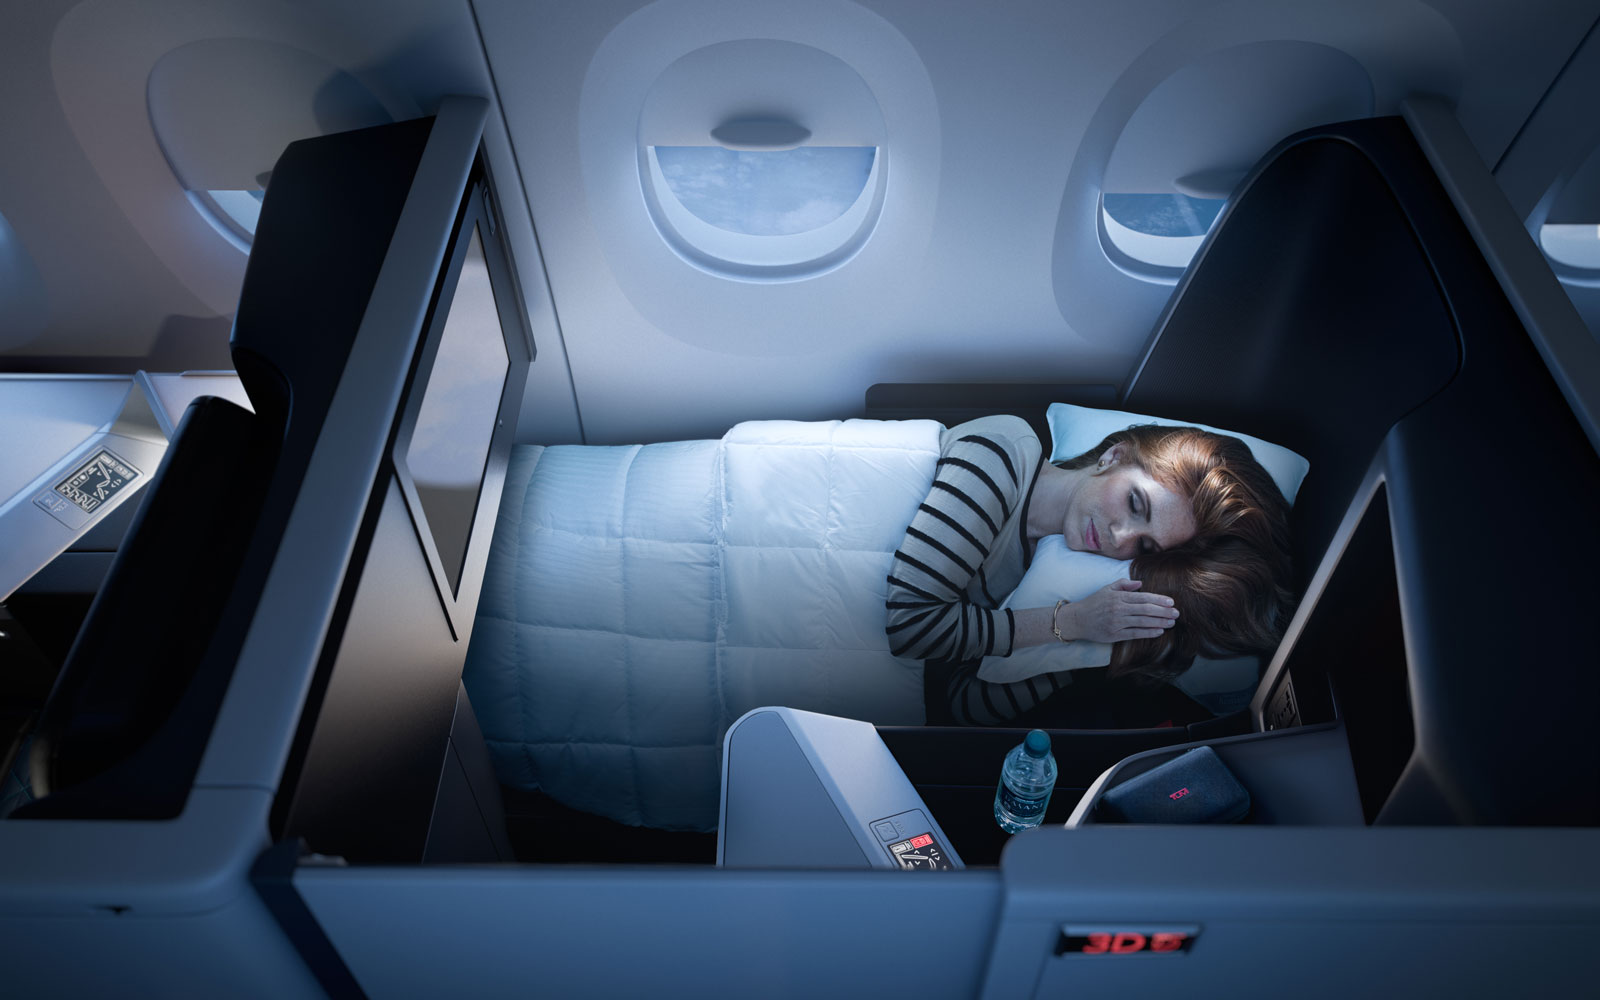 Delta Wants to Mimic a Private Jet With Its All-suite Business Class